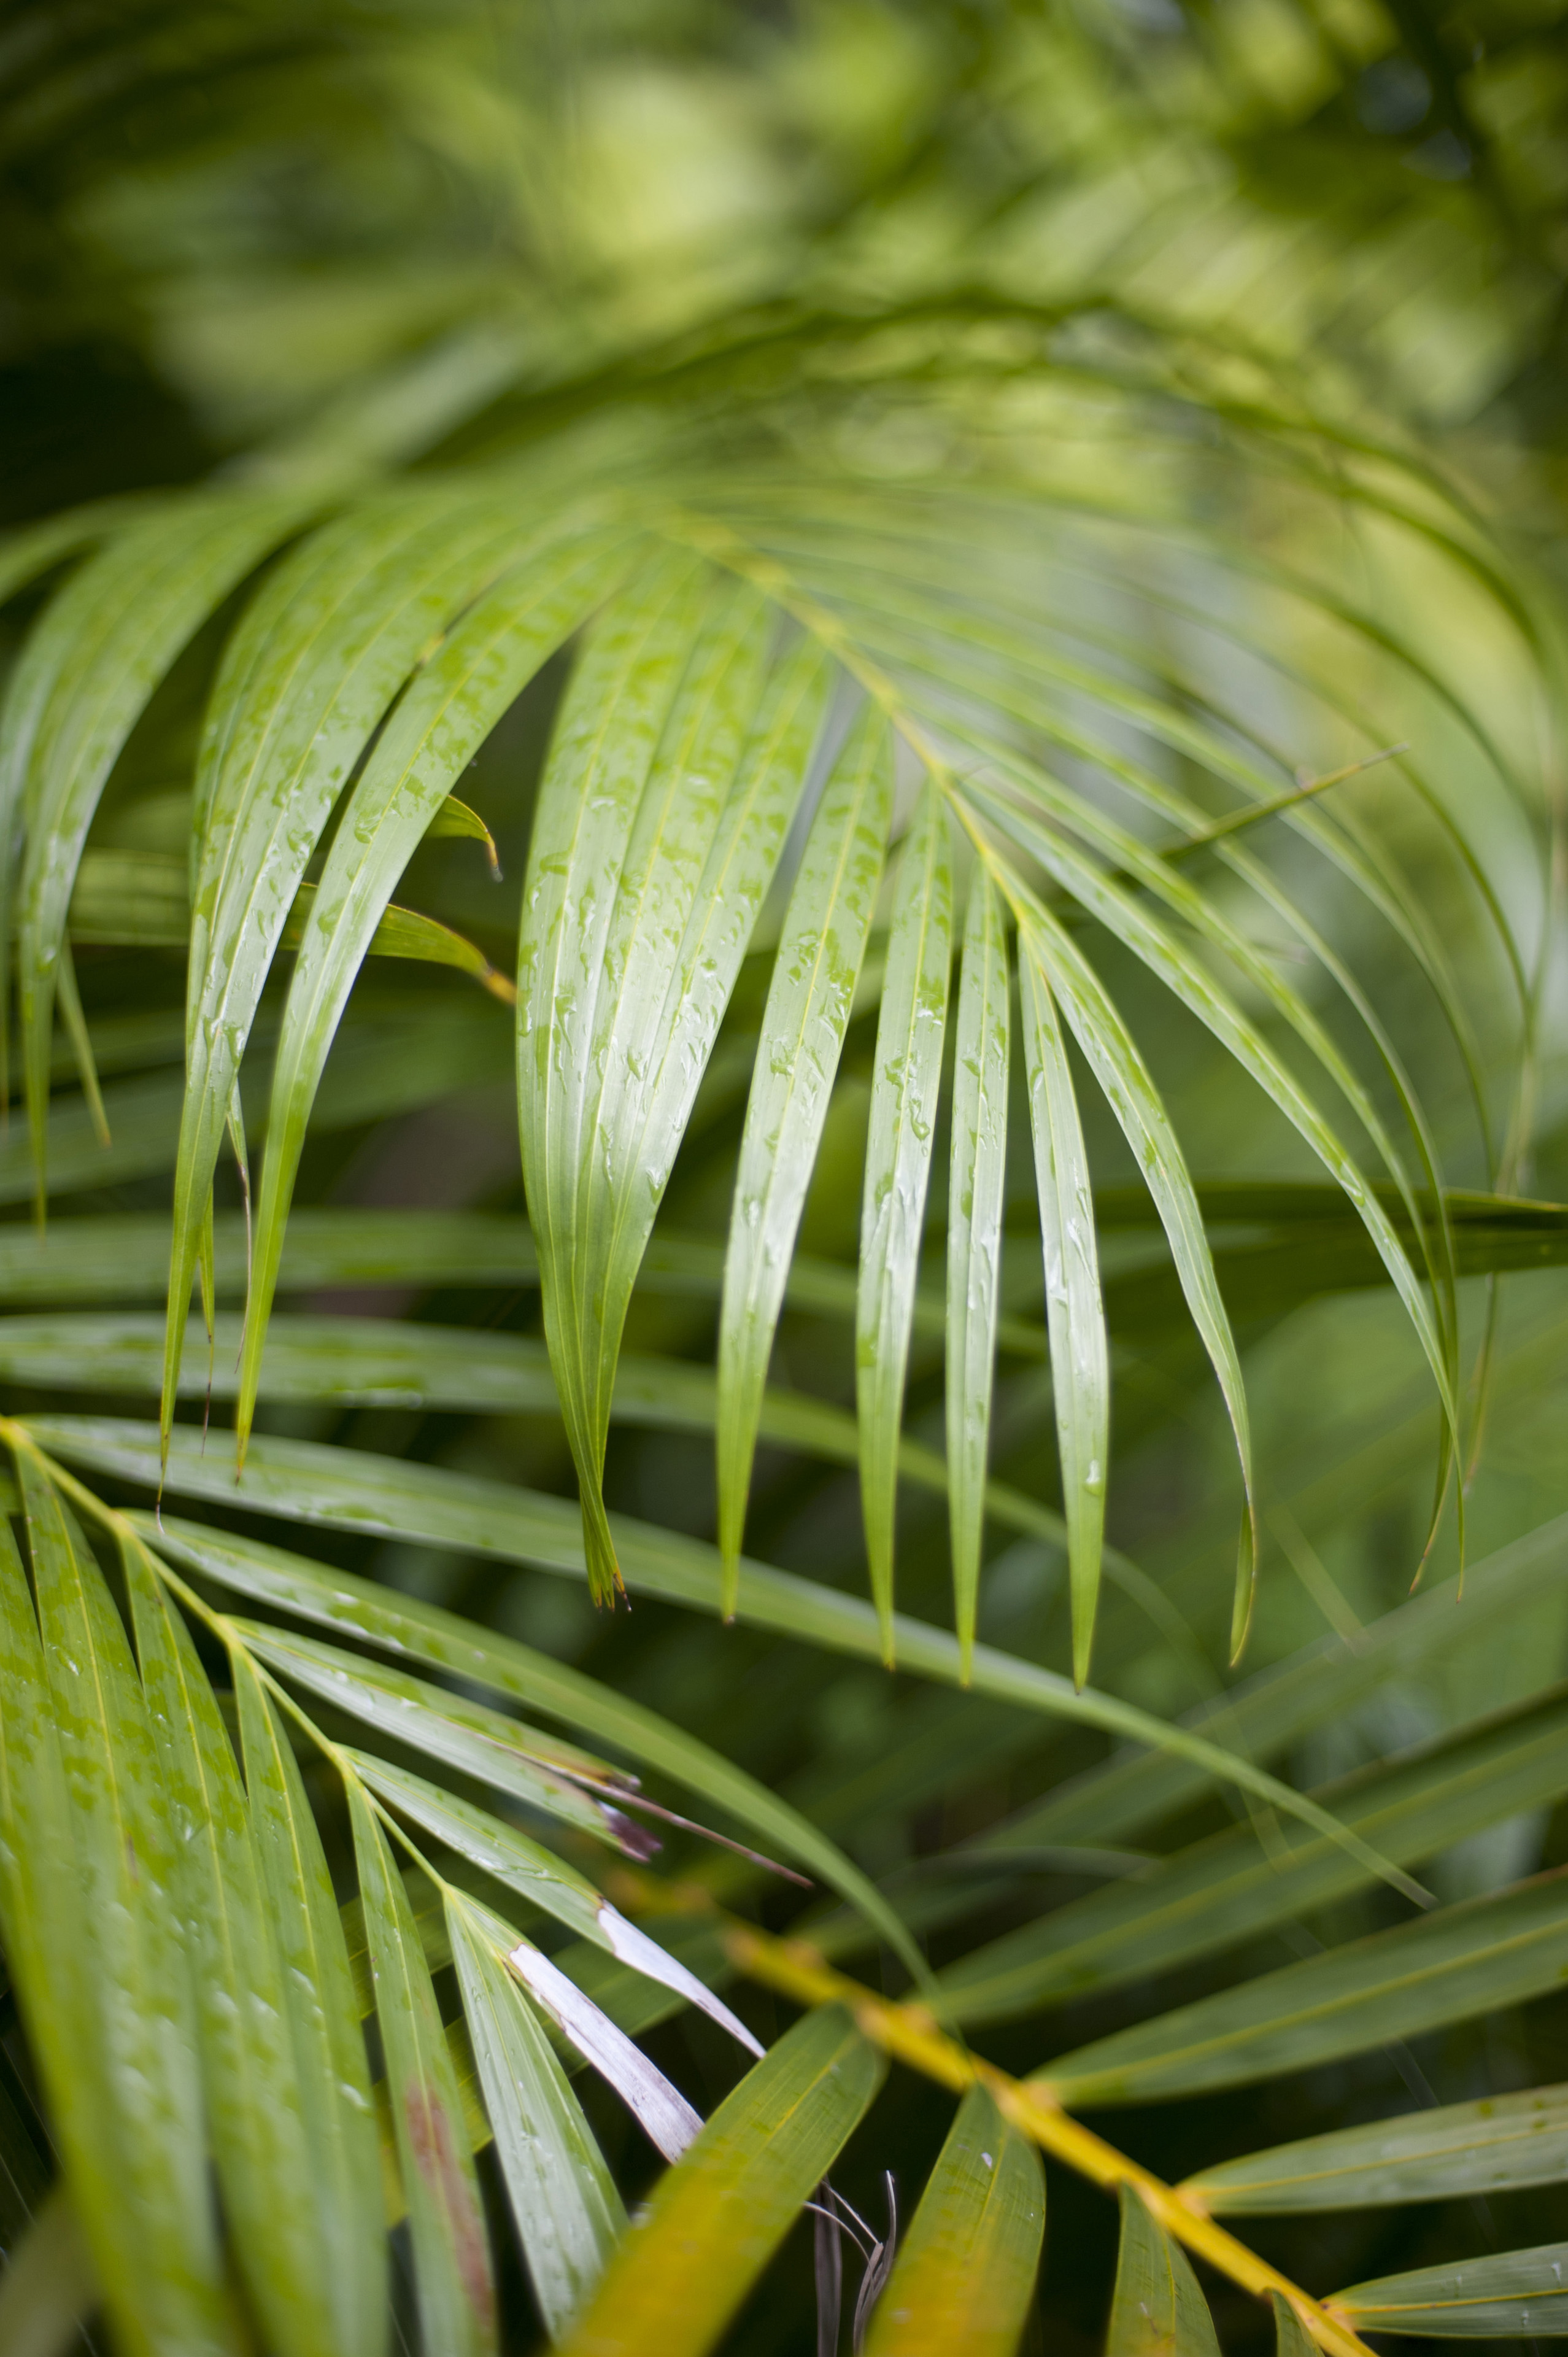 Green leaves of golden cane palm grown as ornamental plant in gardens or tropical and subtropical climates, close-up